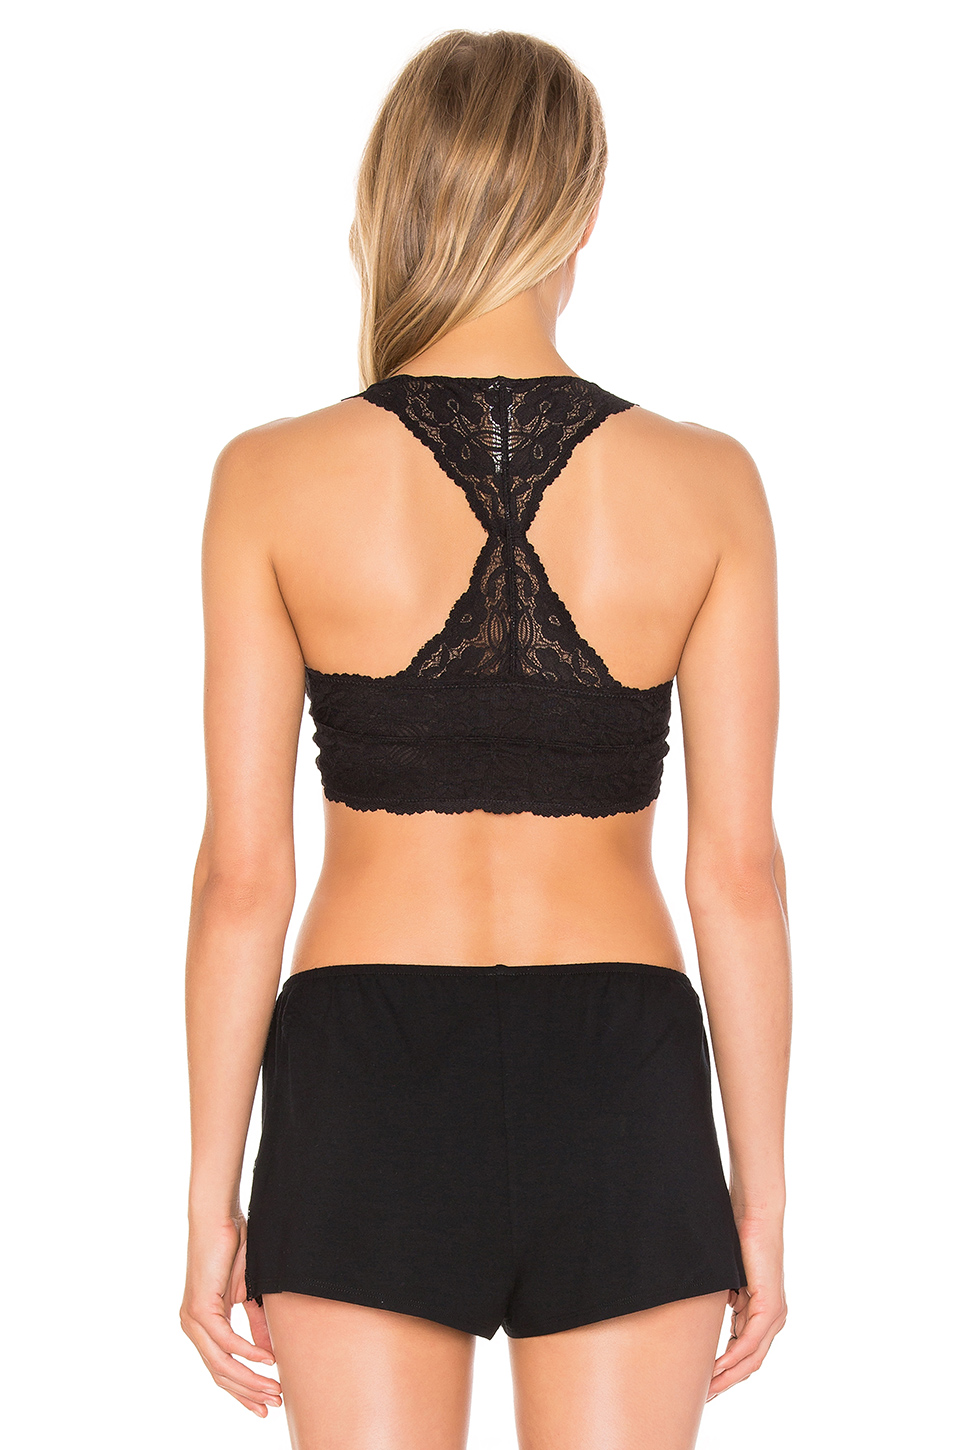 Free People Racerback Crop Bra in Black